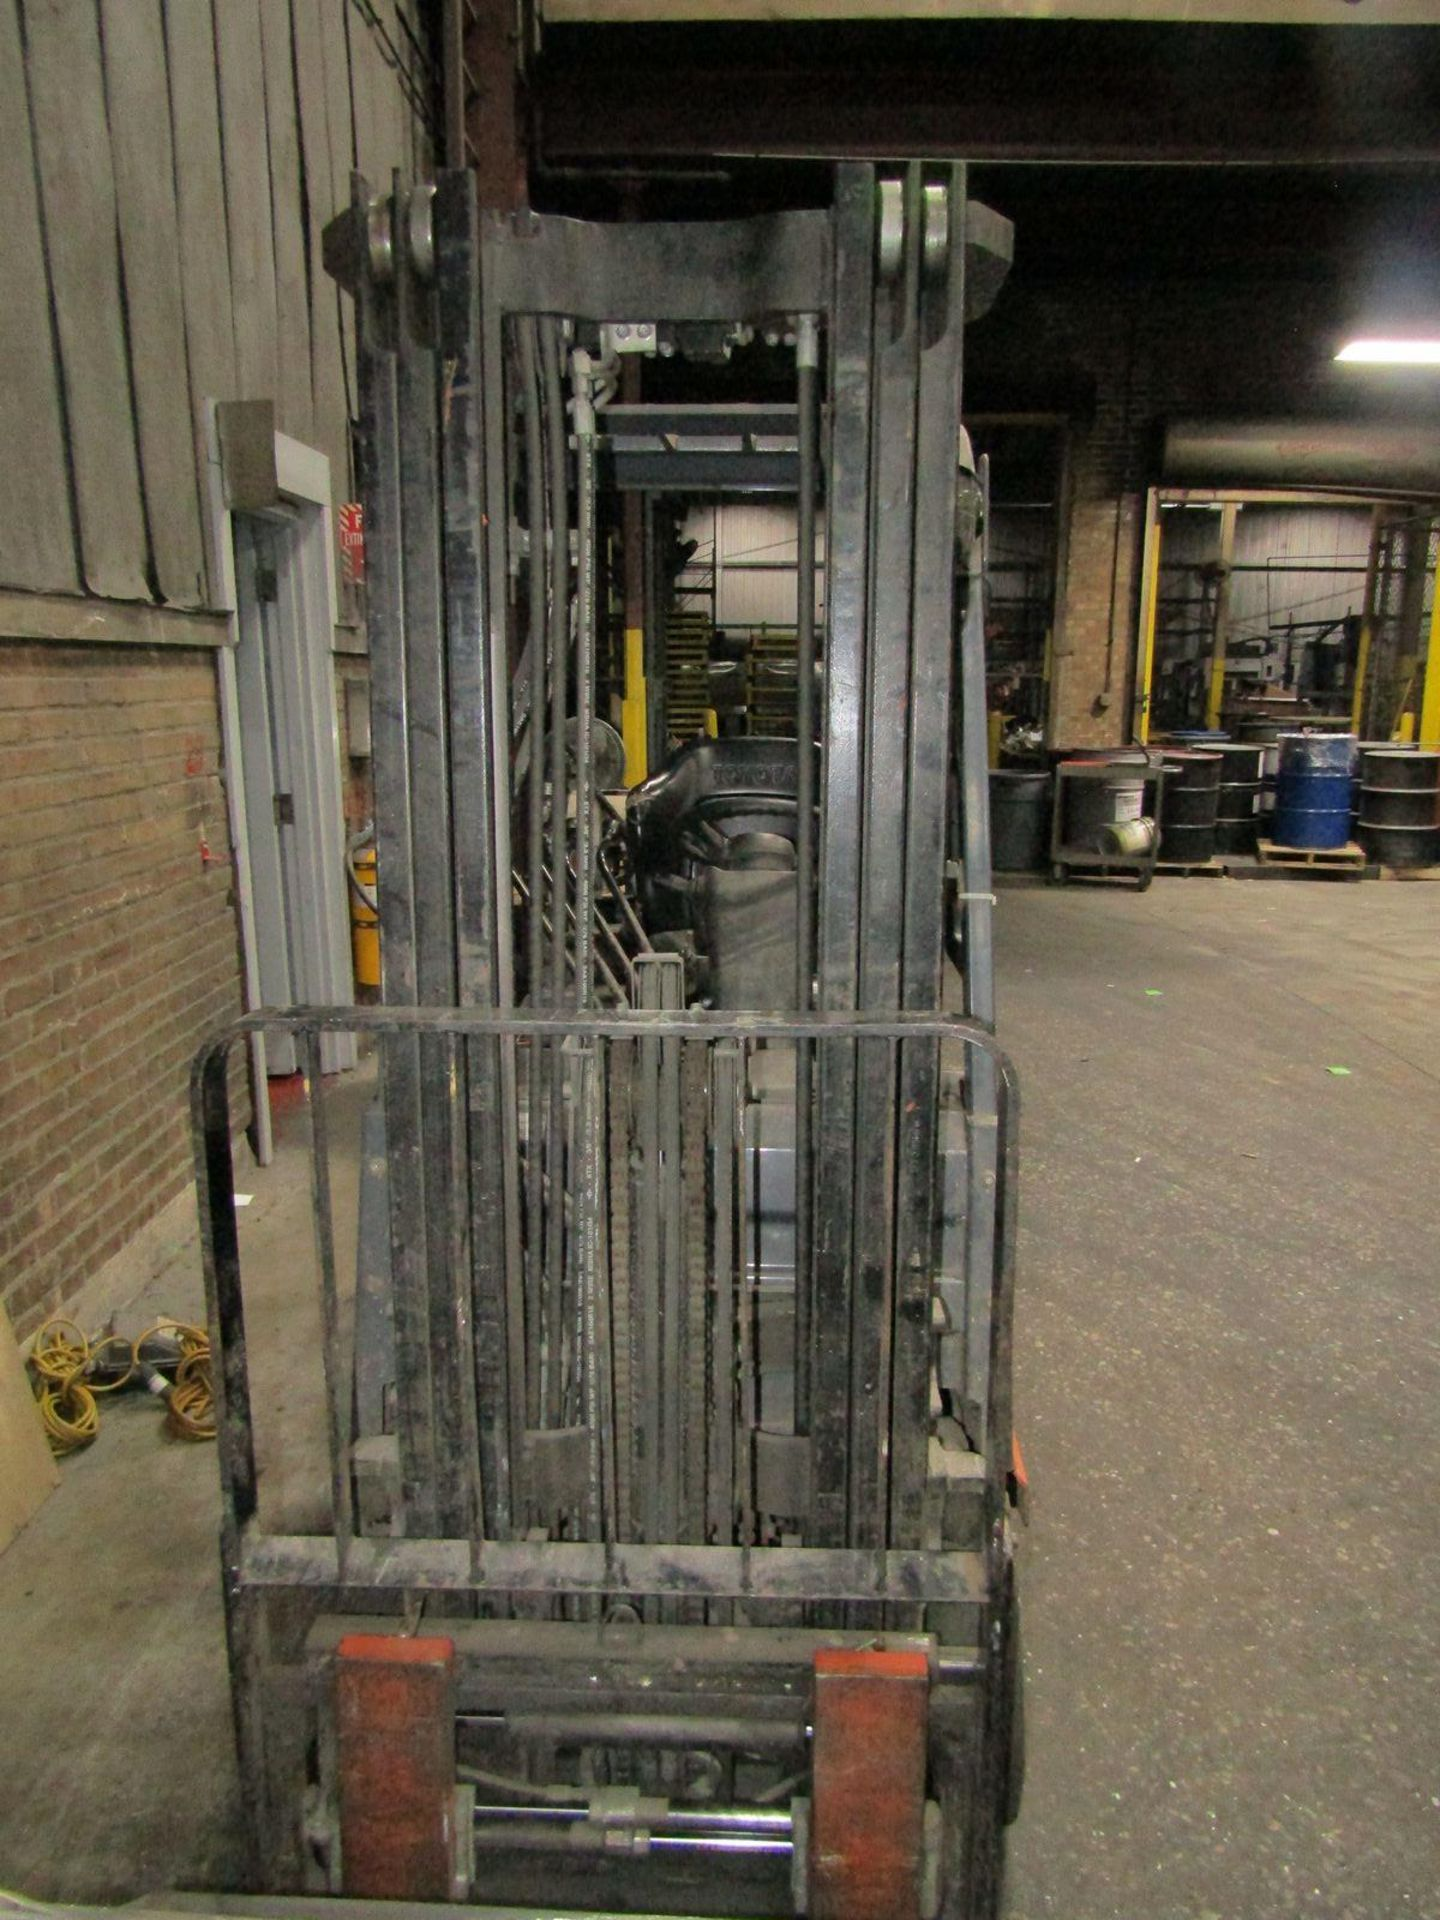 Toyota 5,000 lb. Cap. (approx.) Model 8FGCSU20 LP Fork Lift Truck, S/N: 20712; with 3-Stage Mast, - Image 7 of 8